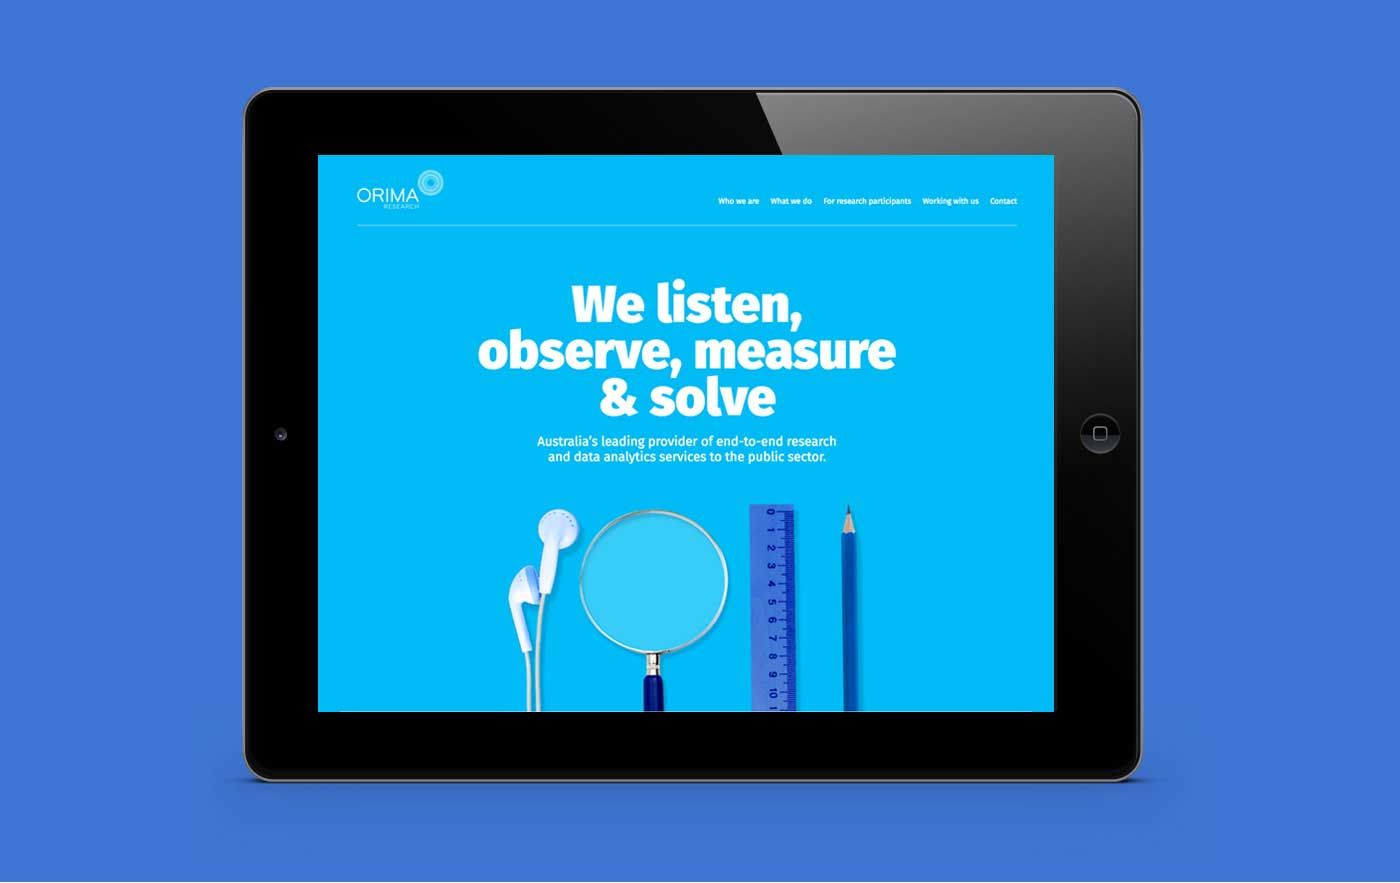 Orima website design on ipad